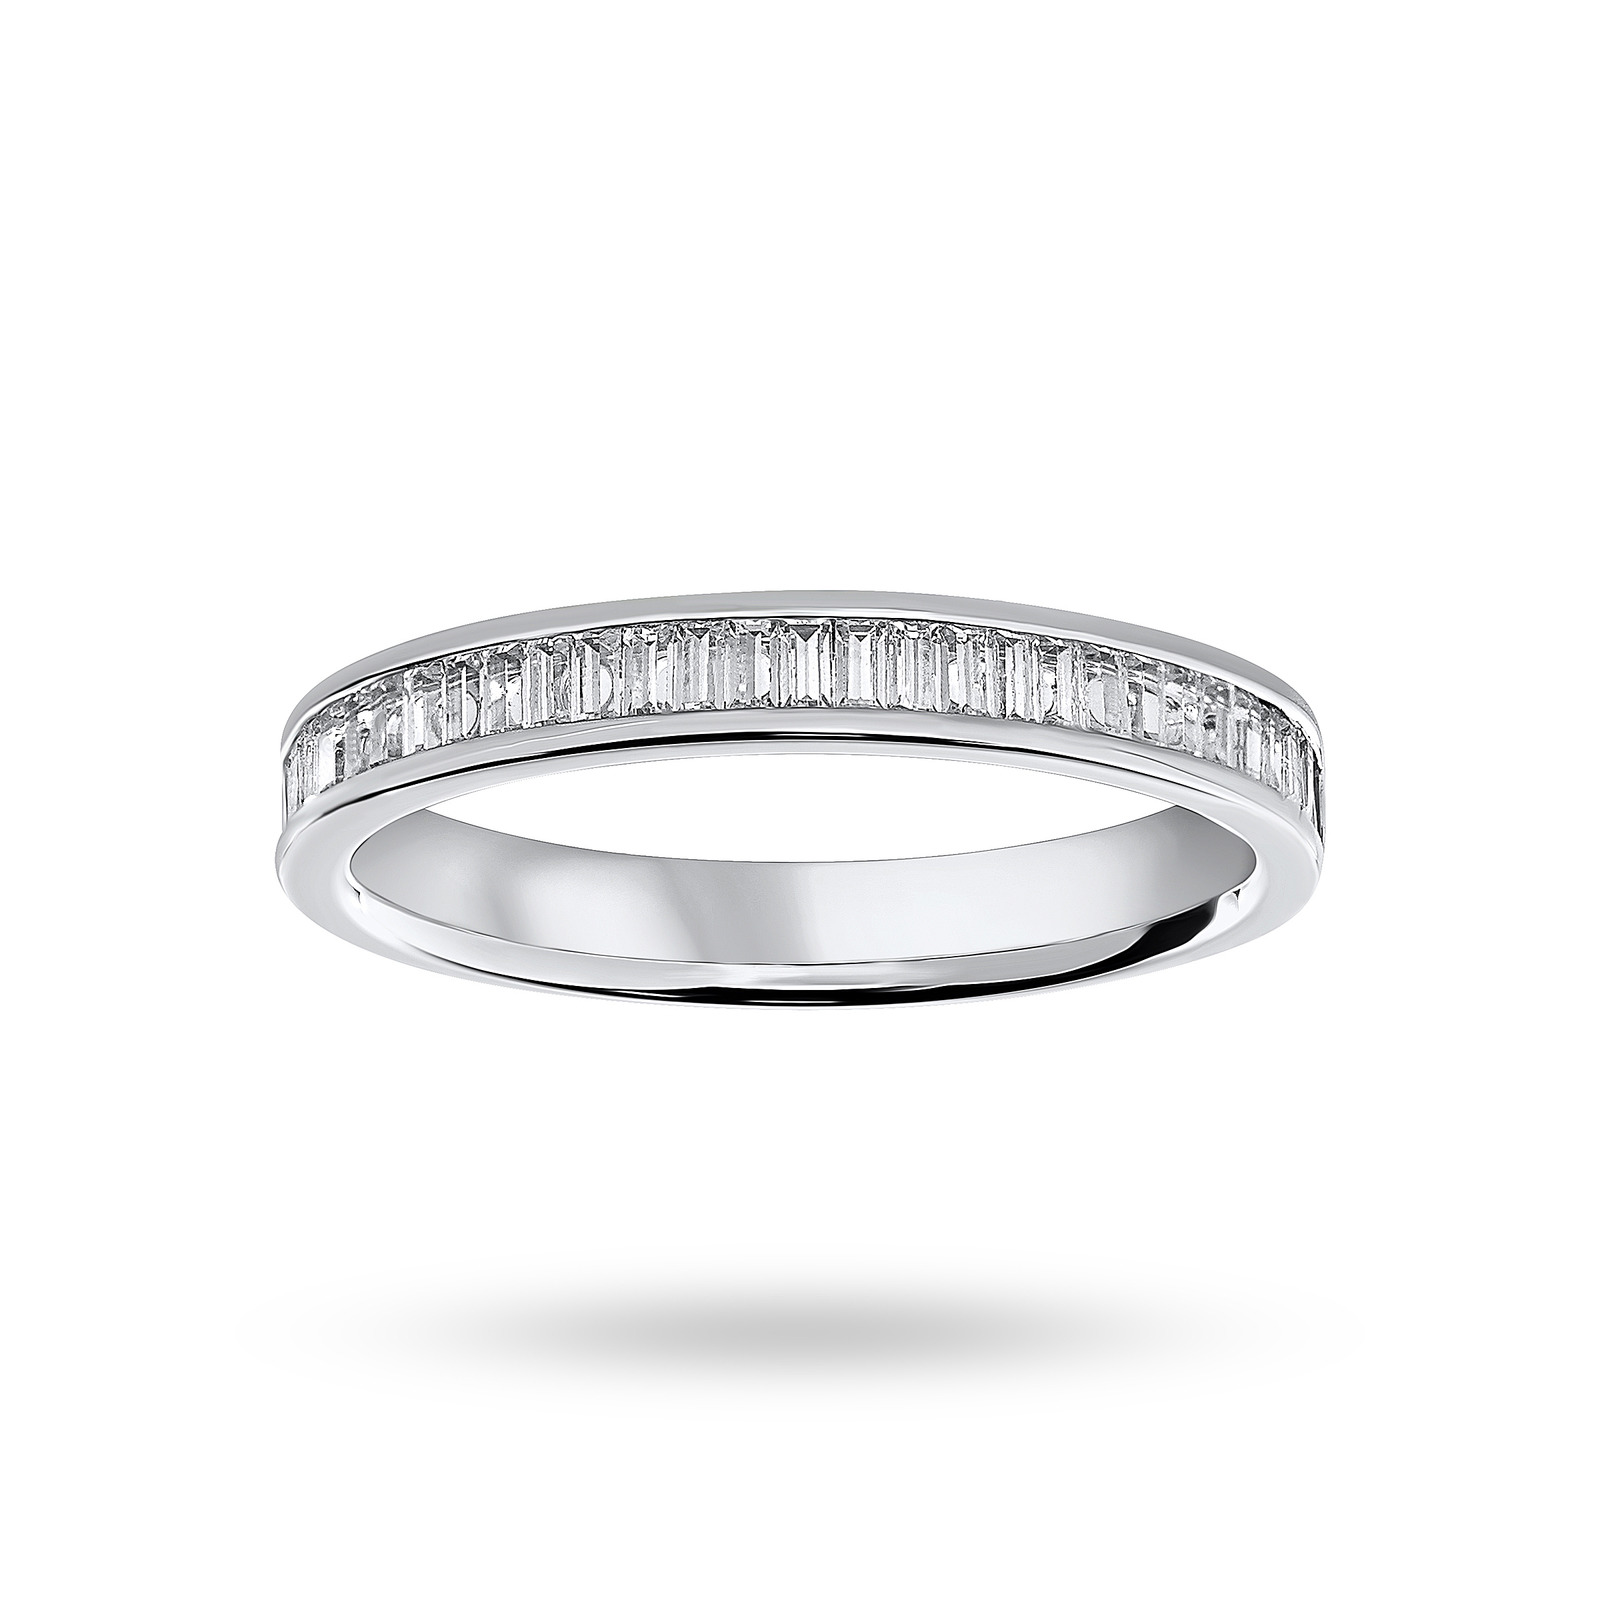 color and g ring premium diamond wedding band clarity platinum in vs h bands baguette straight